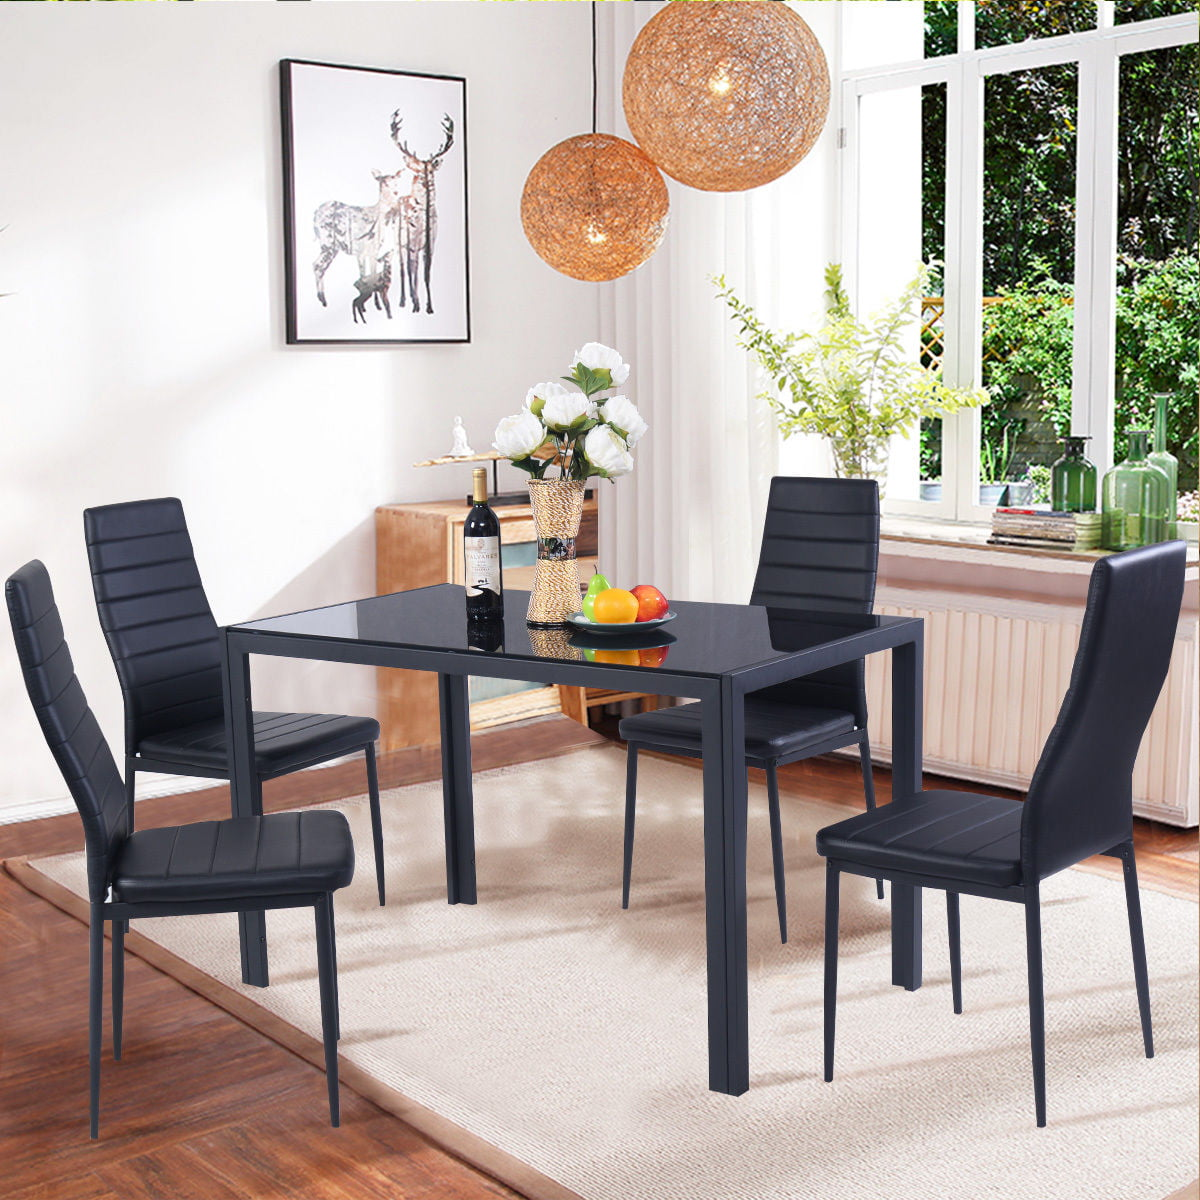 Dining Kitchen Table Sets: Costway 5 Piece Kitchen Dining Set Glass Metal Table And 4